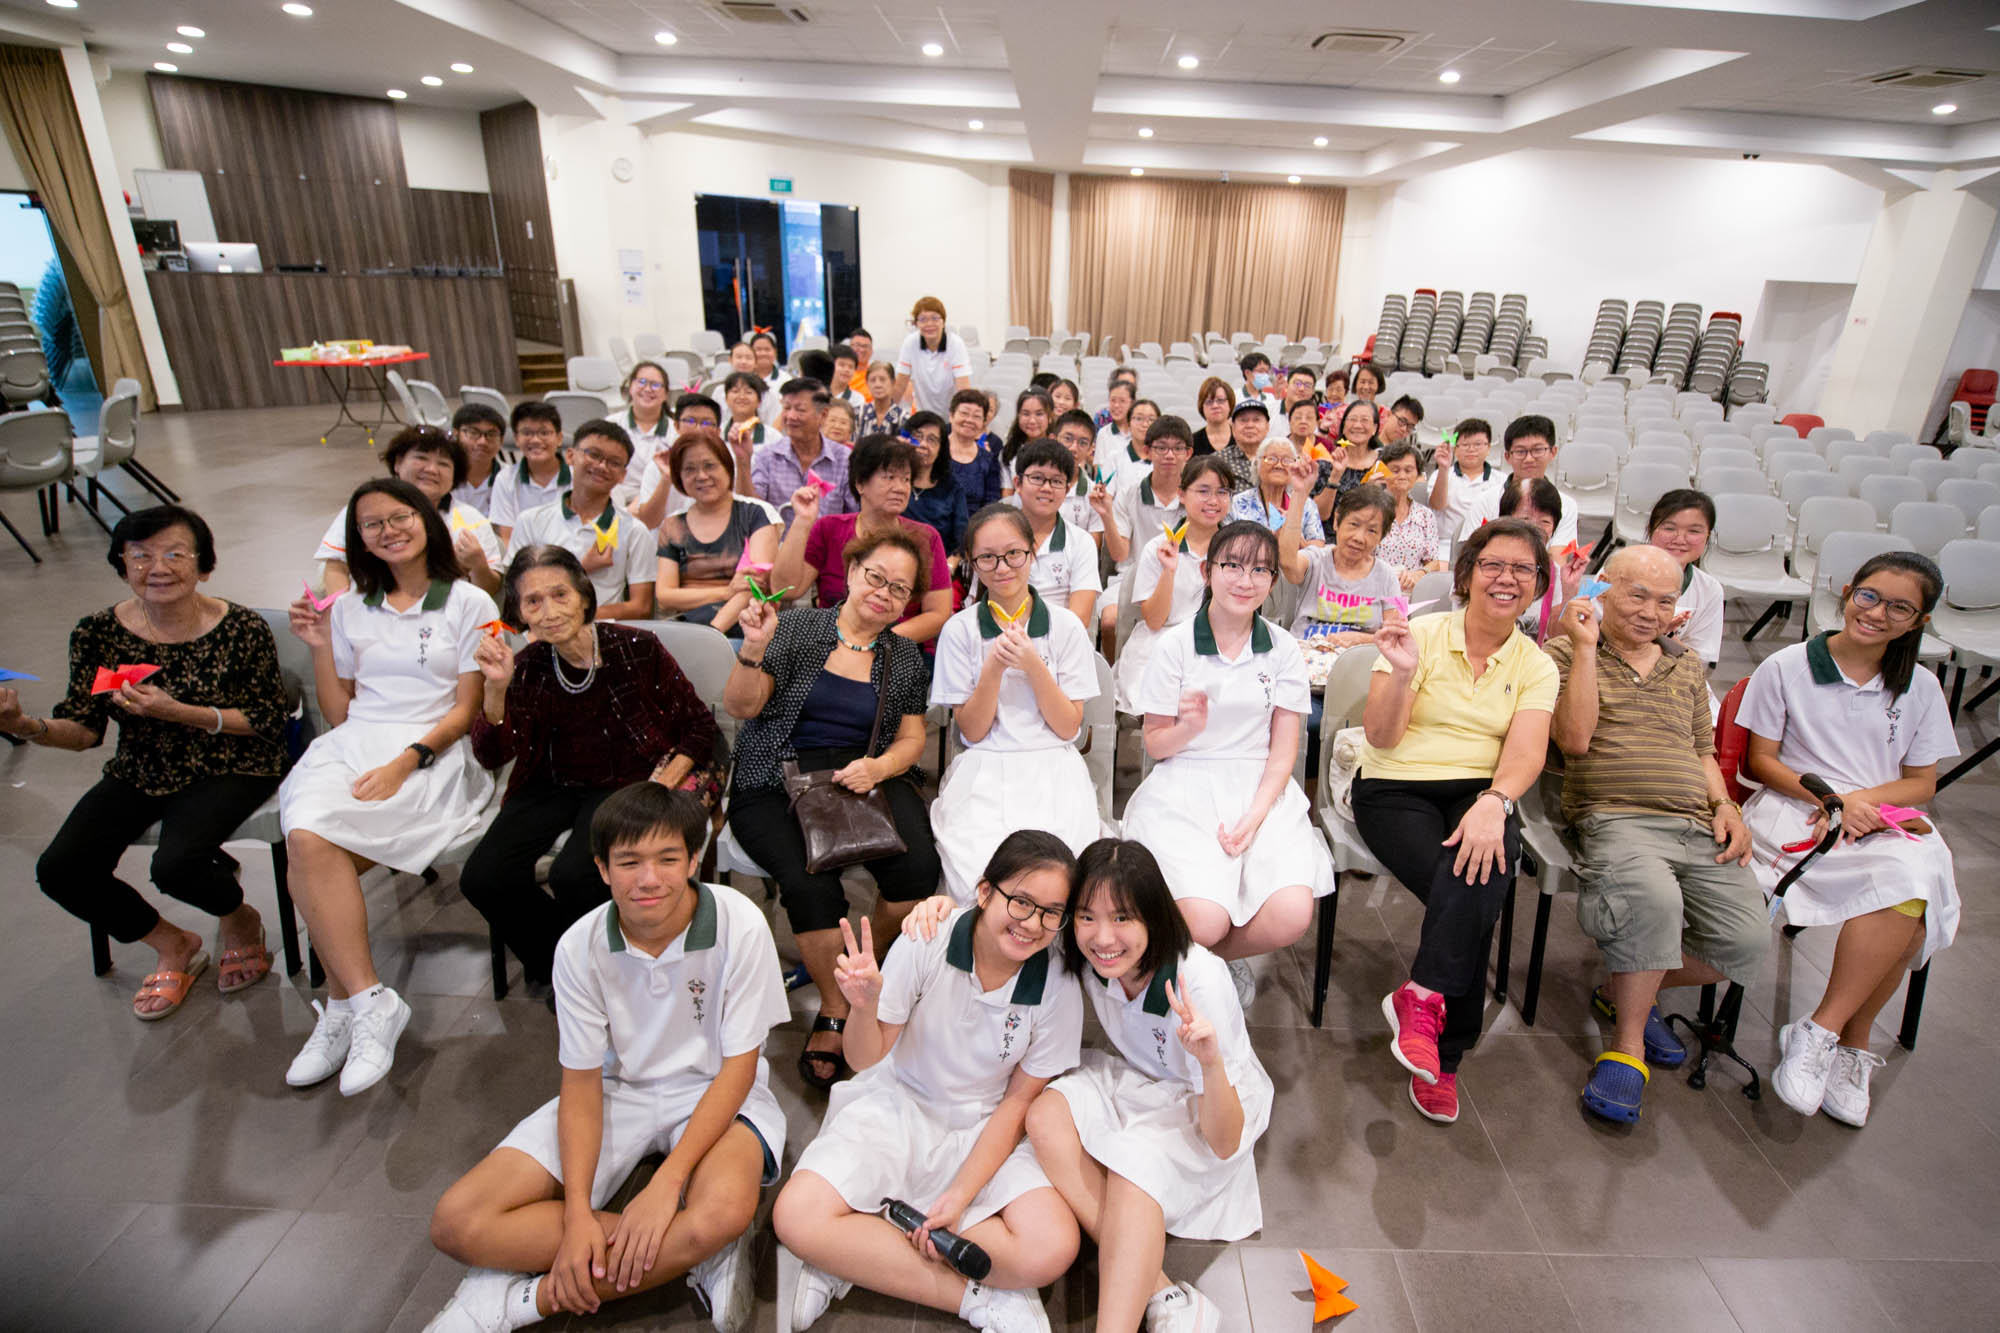 Community Service Project with ACJC